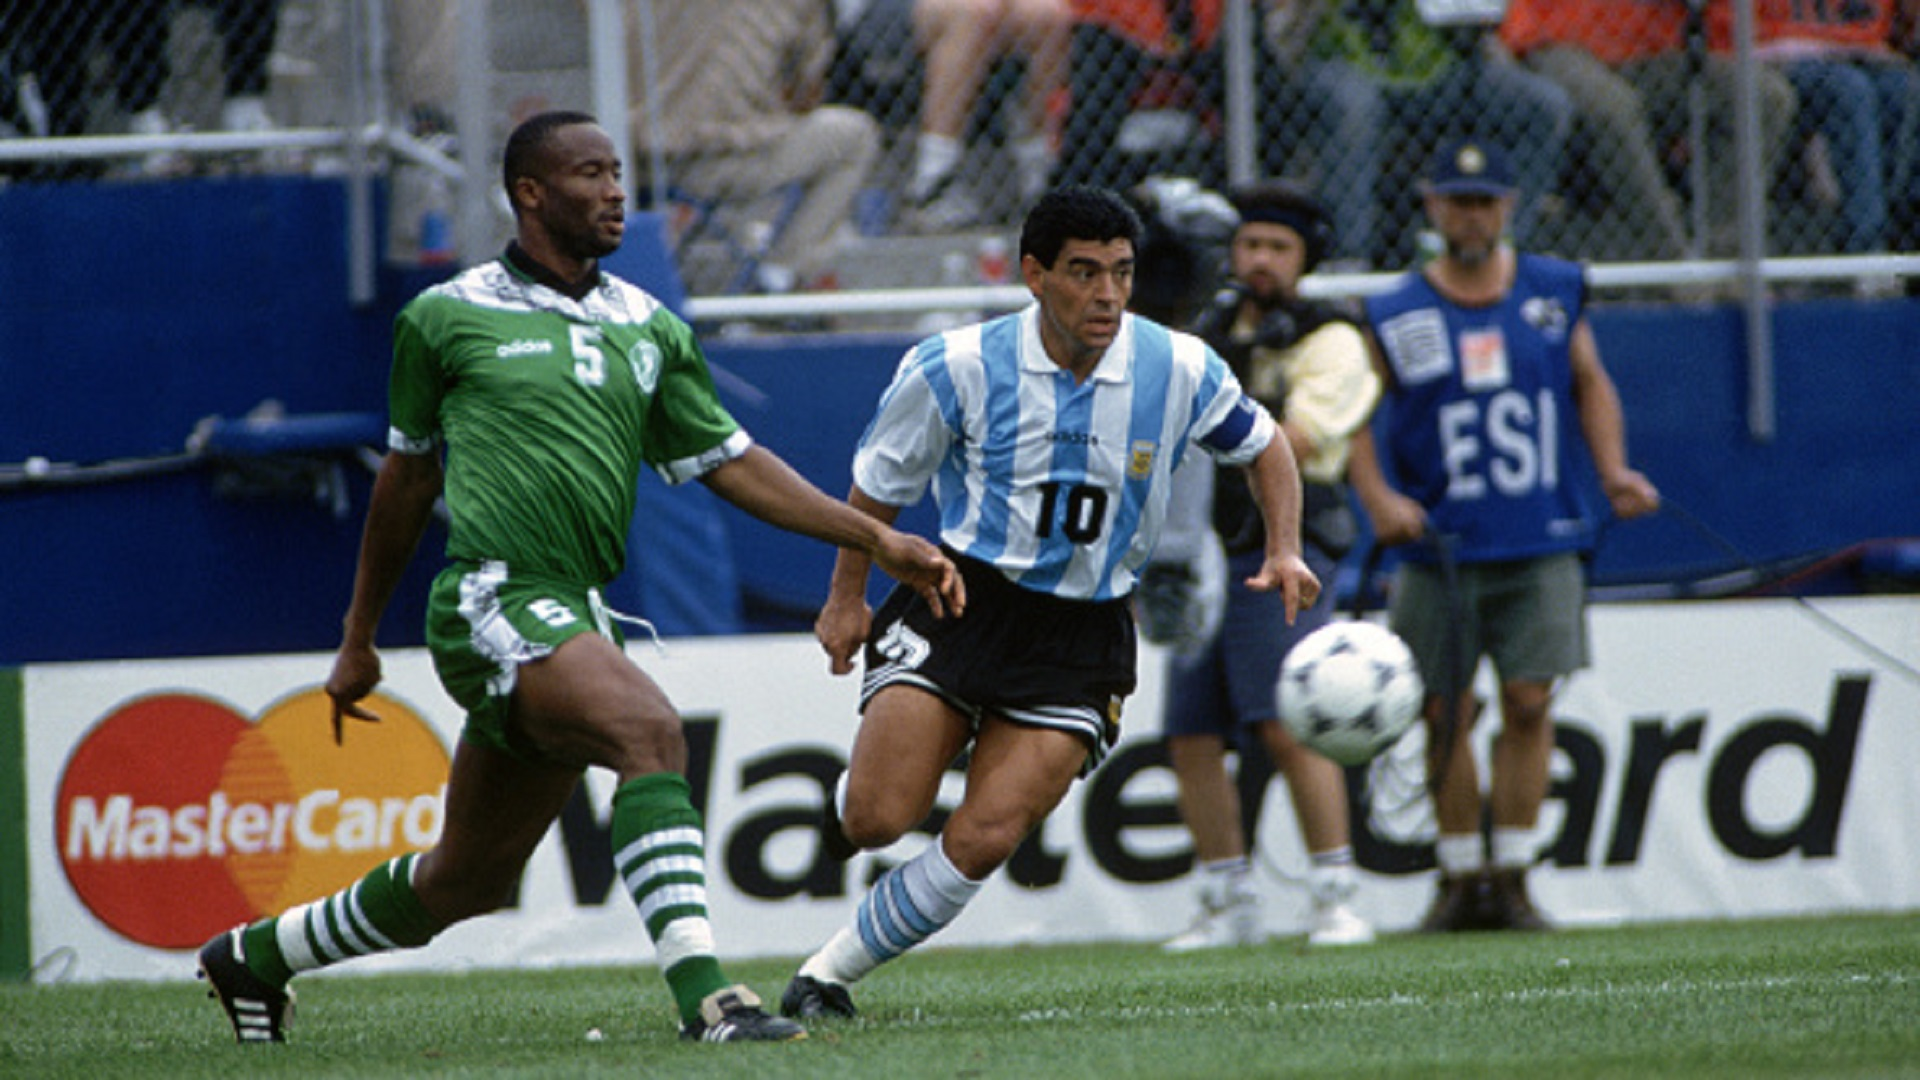 Nigeria vs. Argentina odds, expert picks and insider predictions